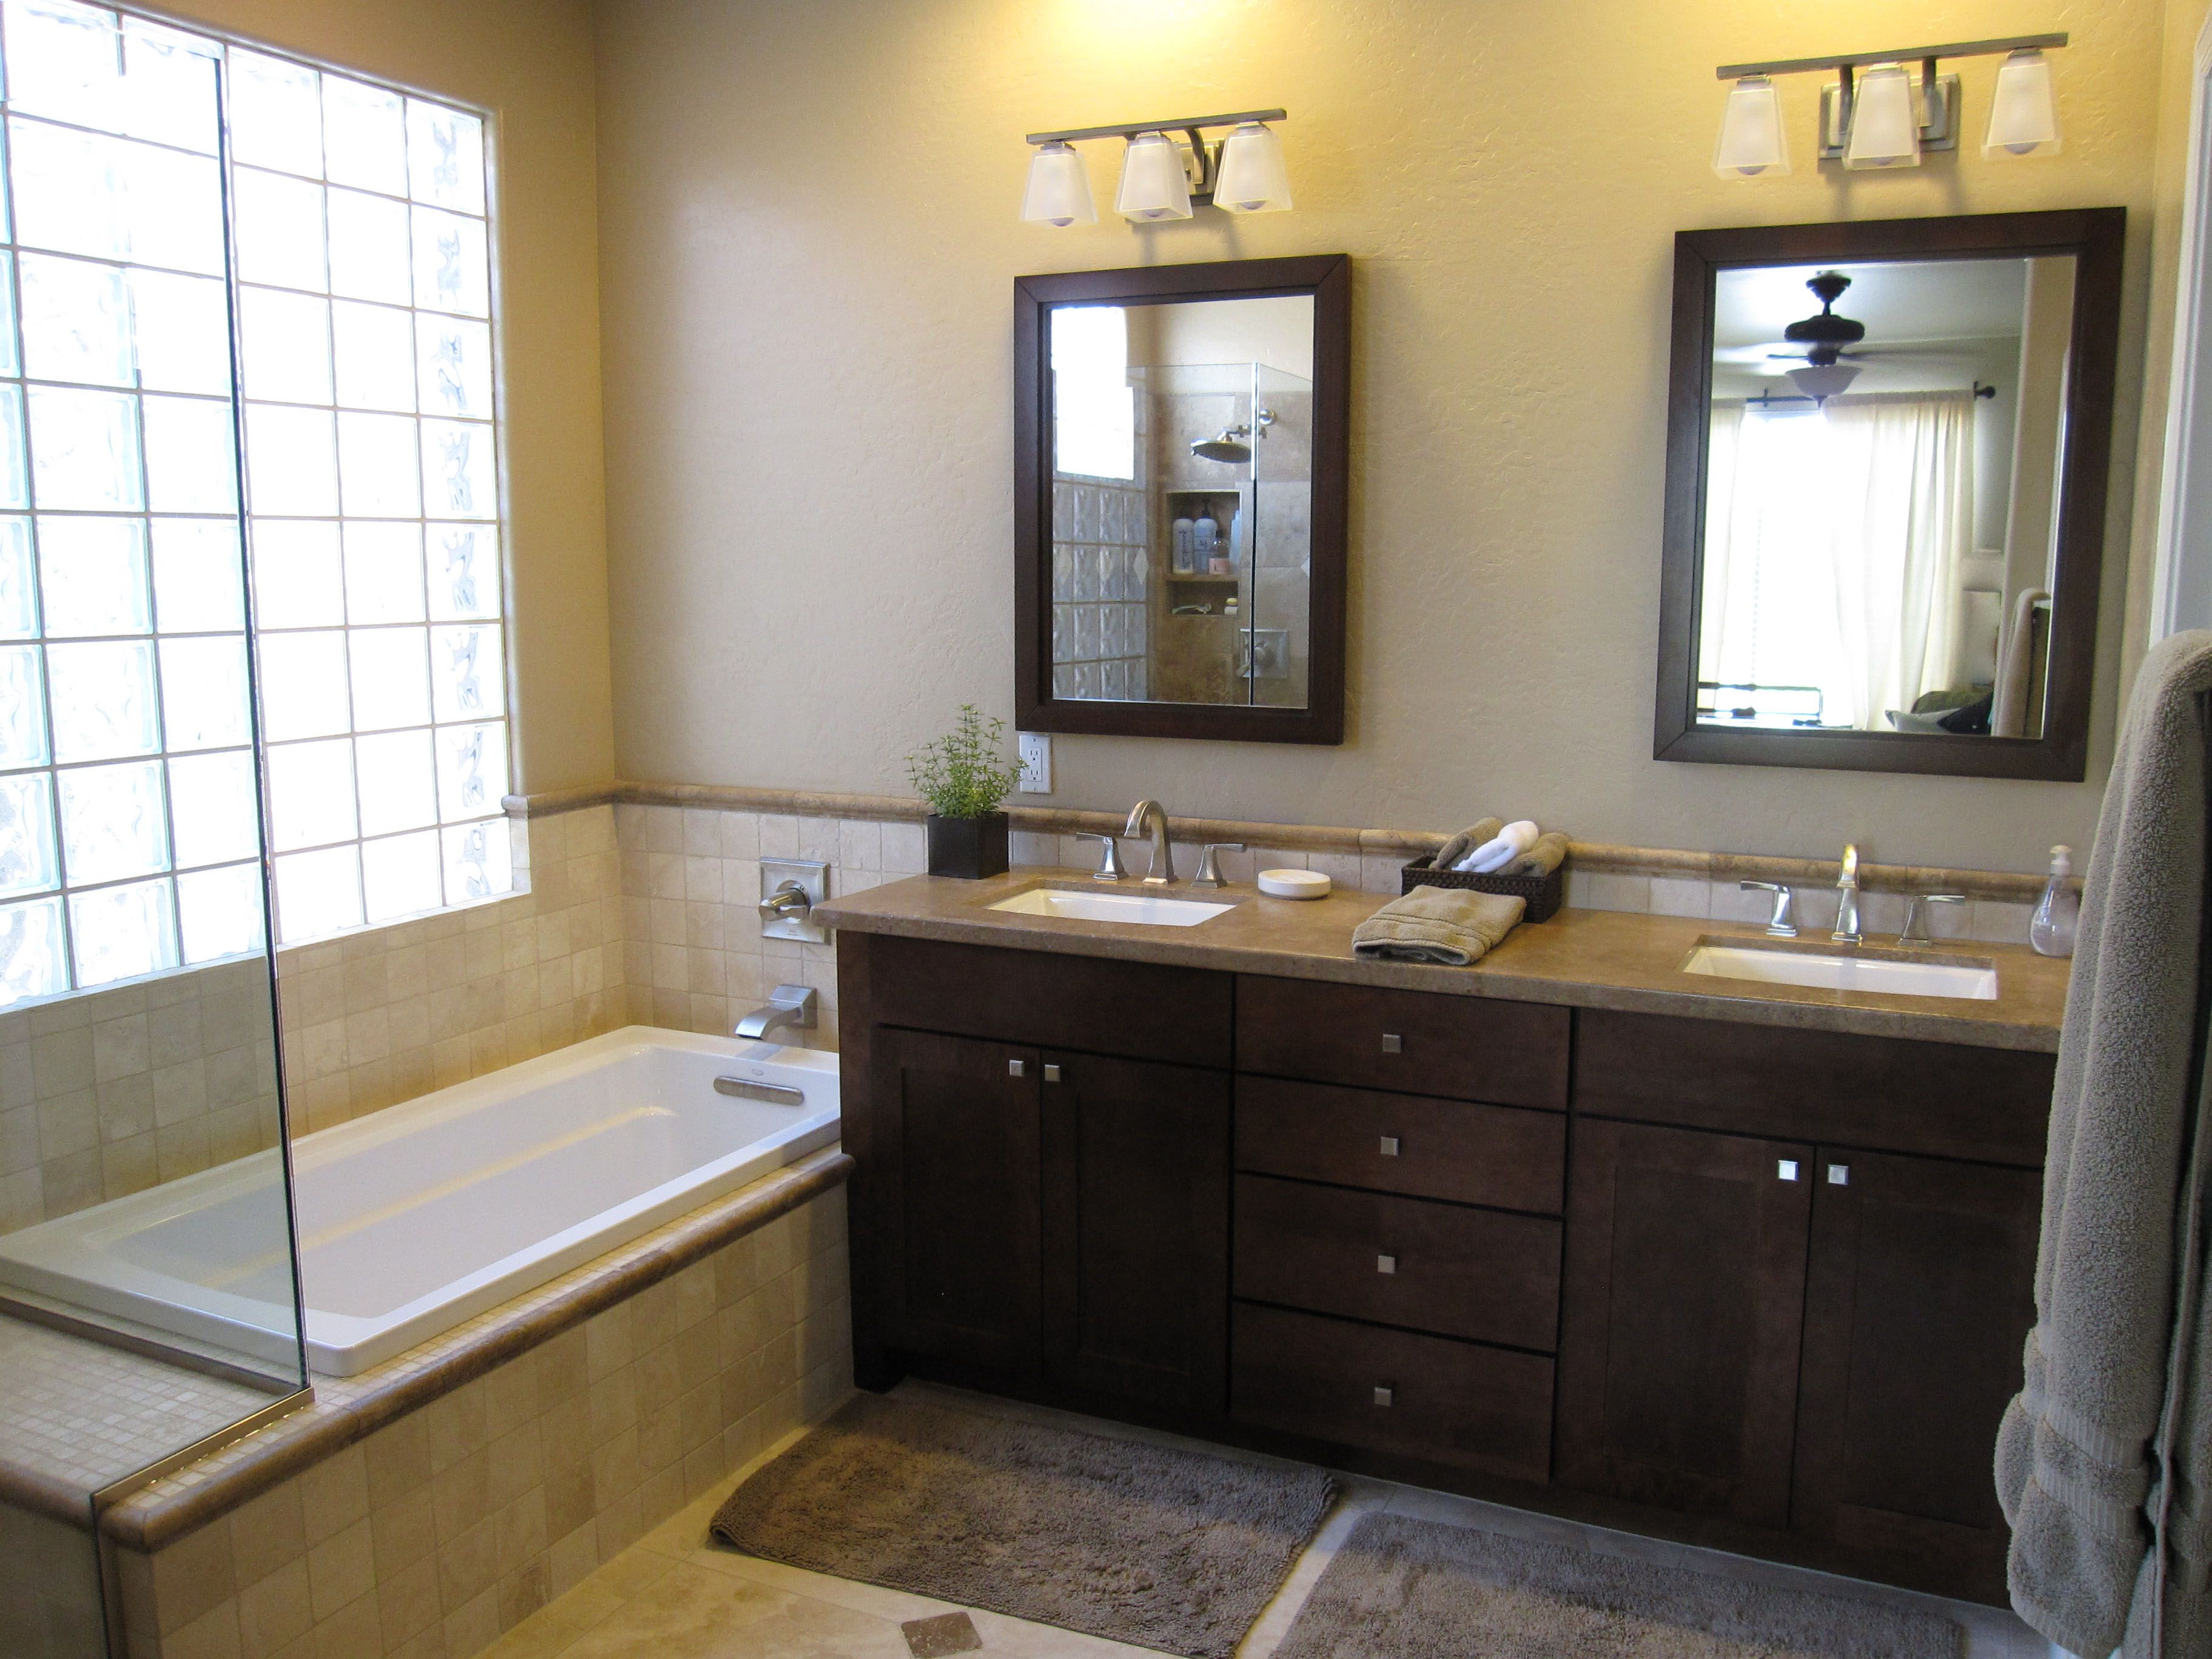 Bathroom Mirrors Ideas With Vanity Wooden Cabinets Furniture Brown